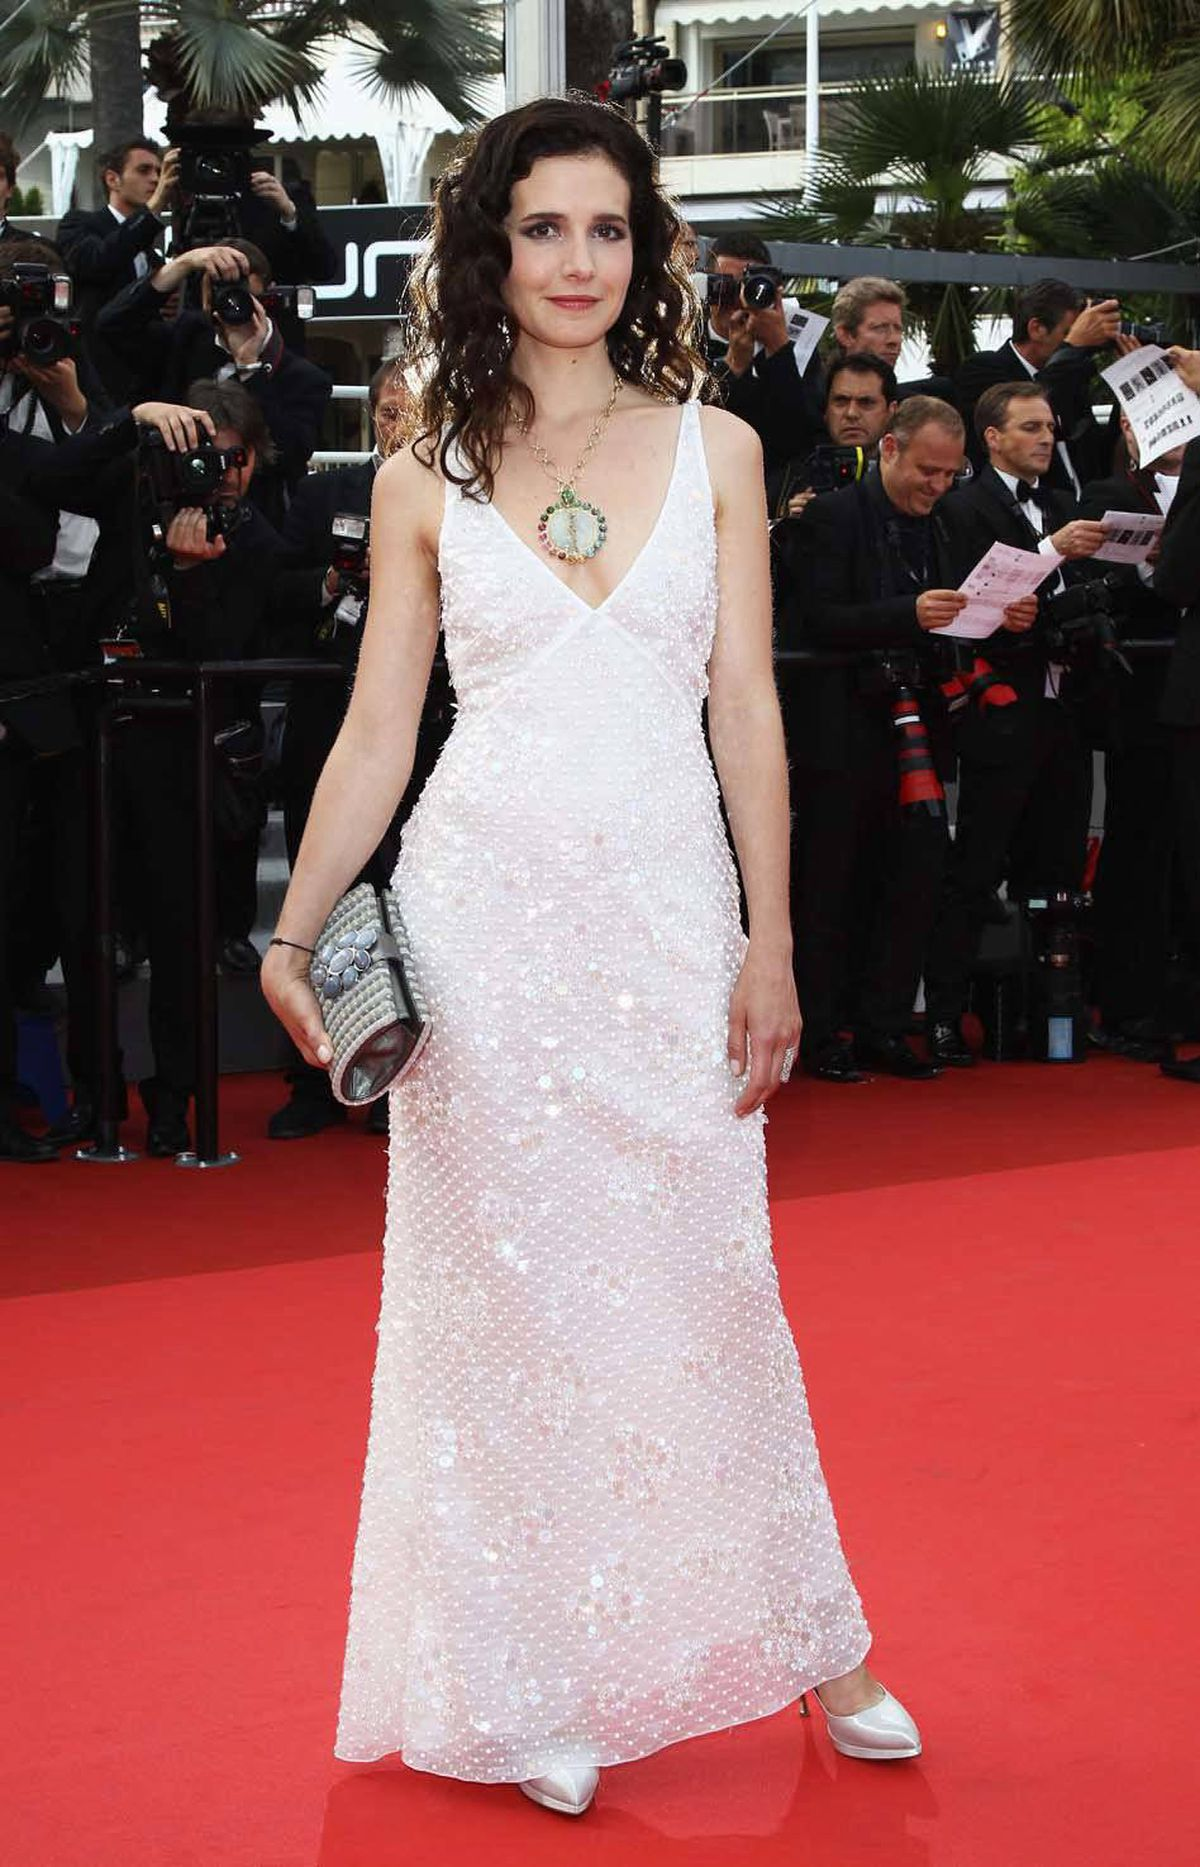 """French actress Chloe Lambert attends the """"Habemus Papam"""" premiere at the Cannes Film Festival on Friday."""